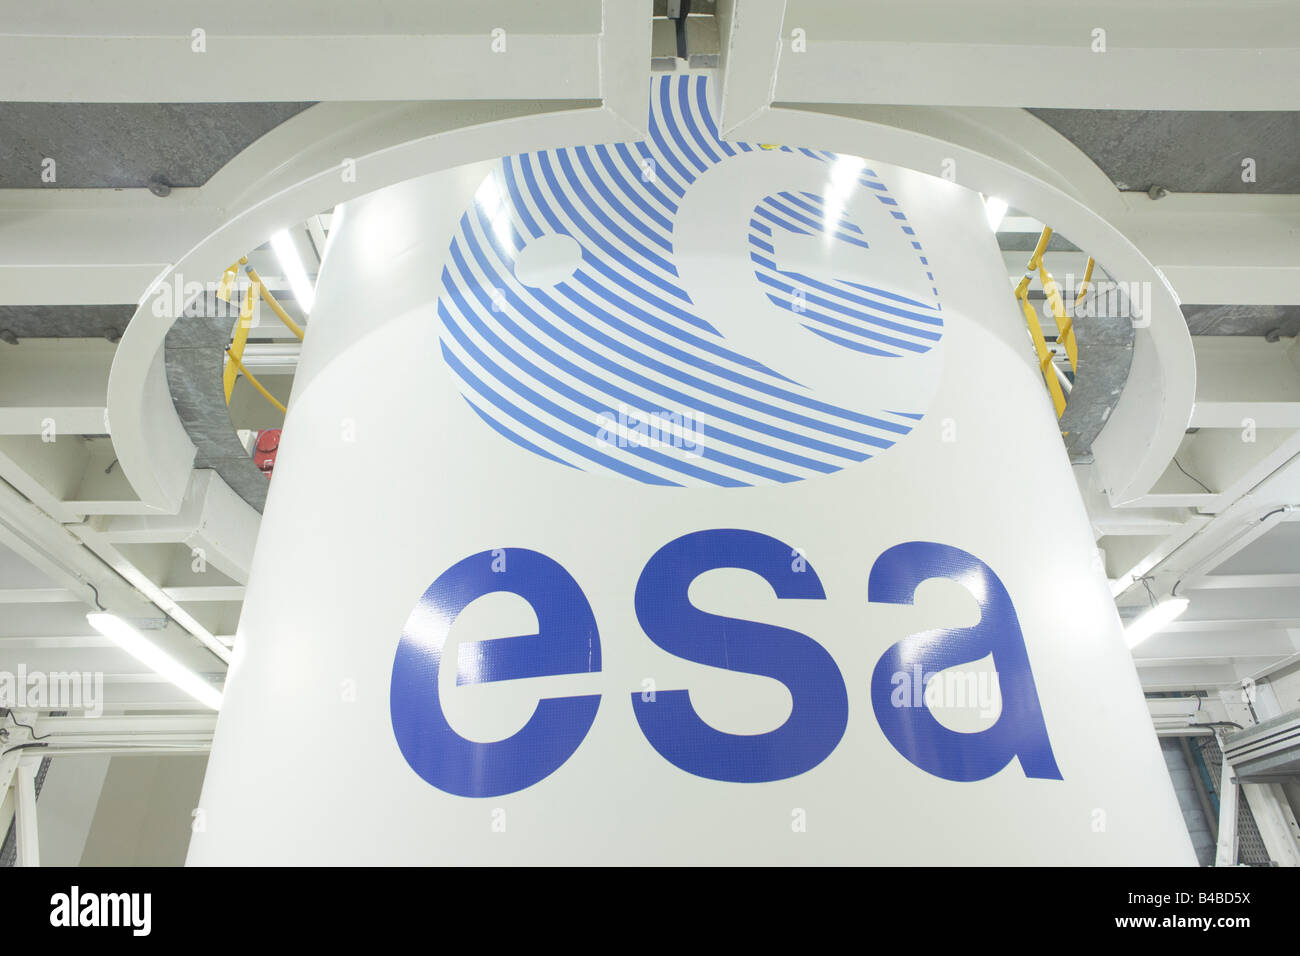 An Ariane 5 rocket booster in Europropulsion's Booster Integration Building at the European Space Agency spaceport - Stock Image